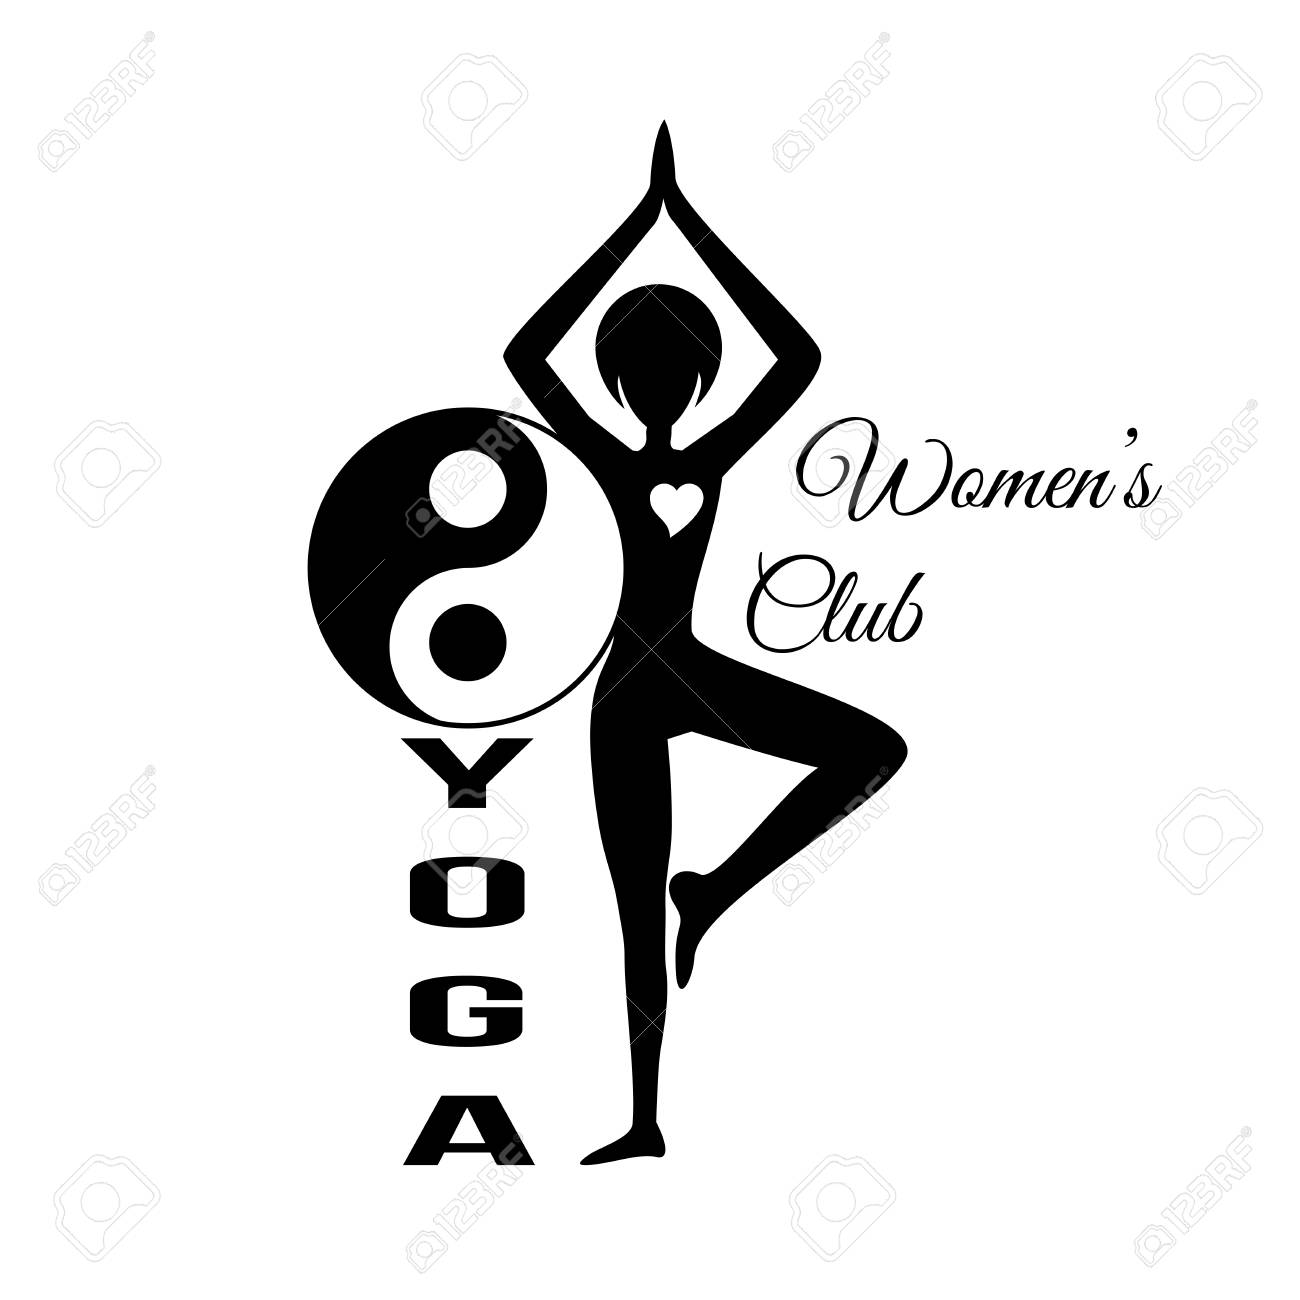 Sport Club Logo Design Template With Woman Silhouette In Pose And Om Yoga Sign Isolated